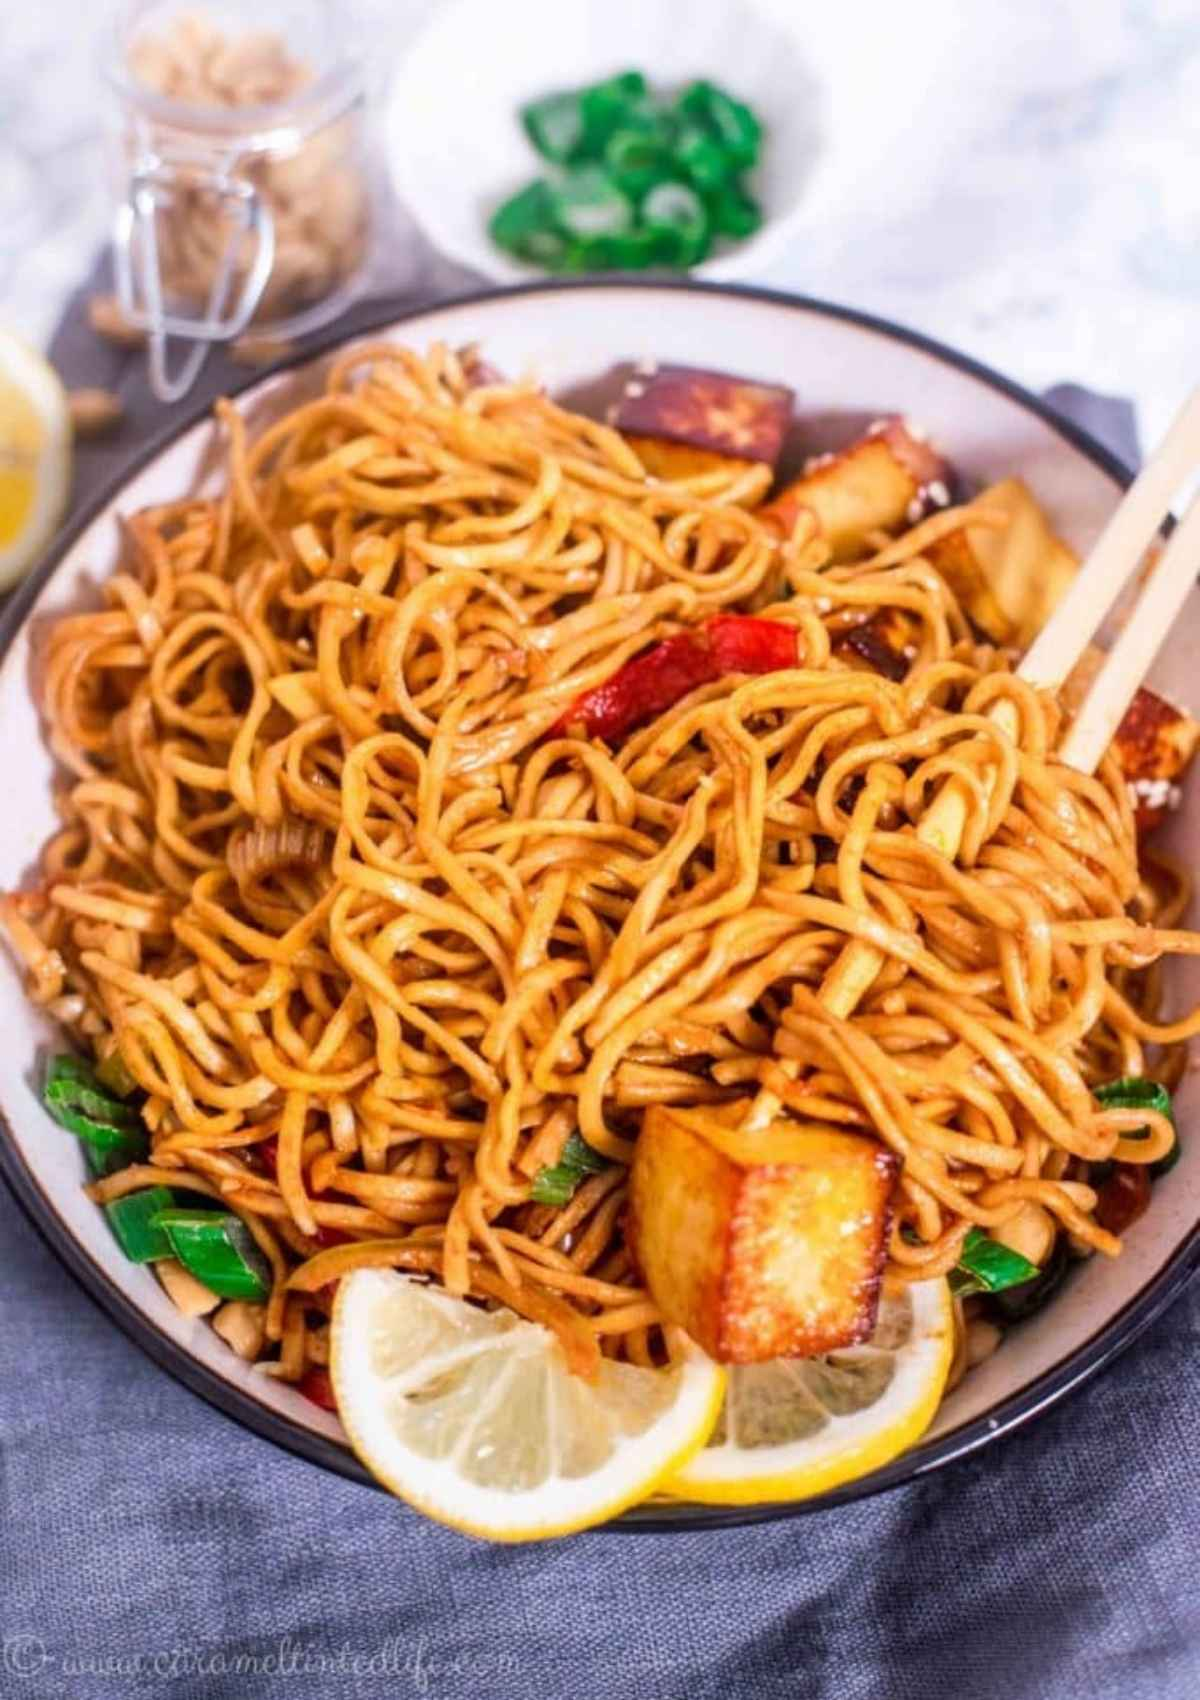 Noodle bowl with noodles, stir-fried veggies and toppings